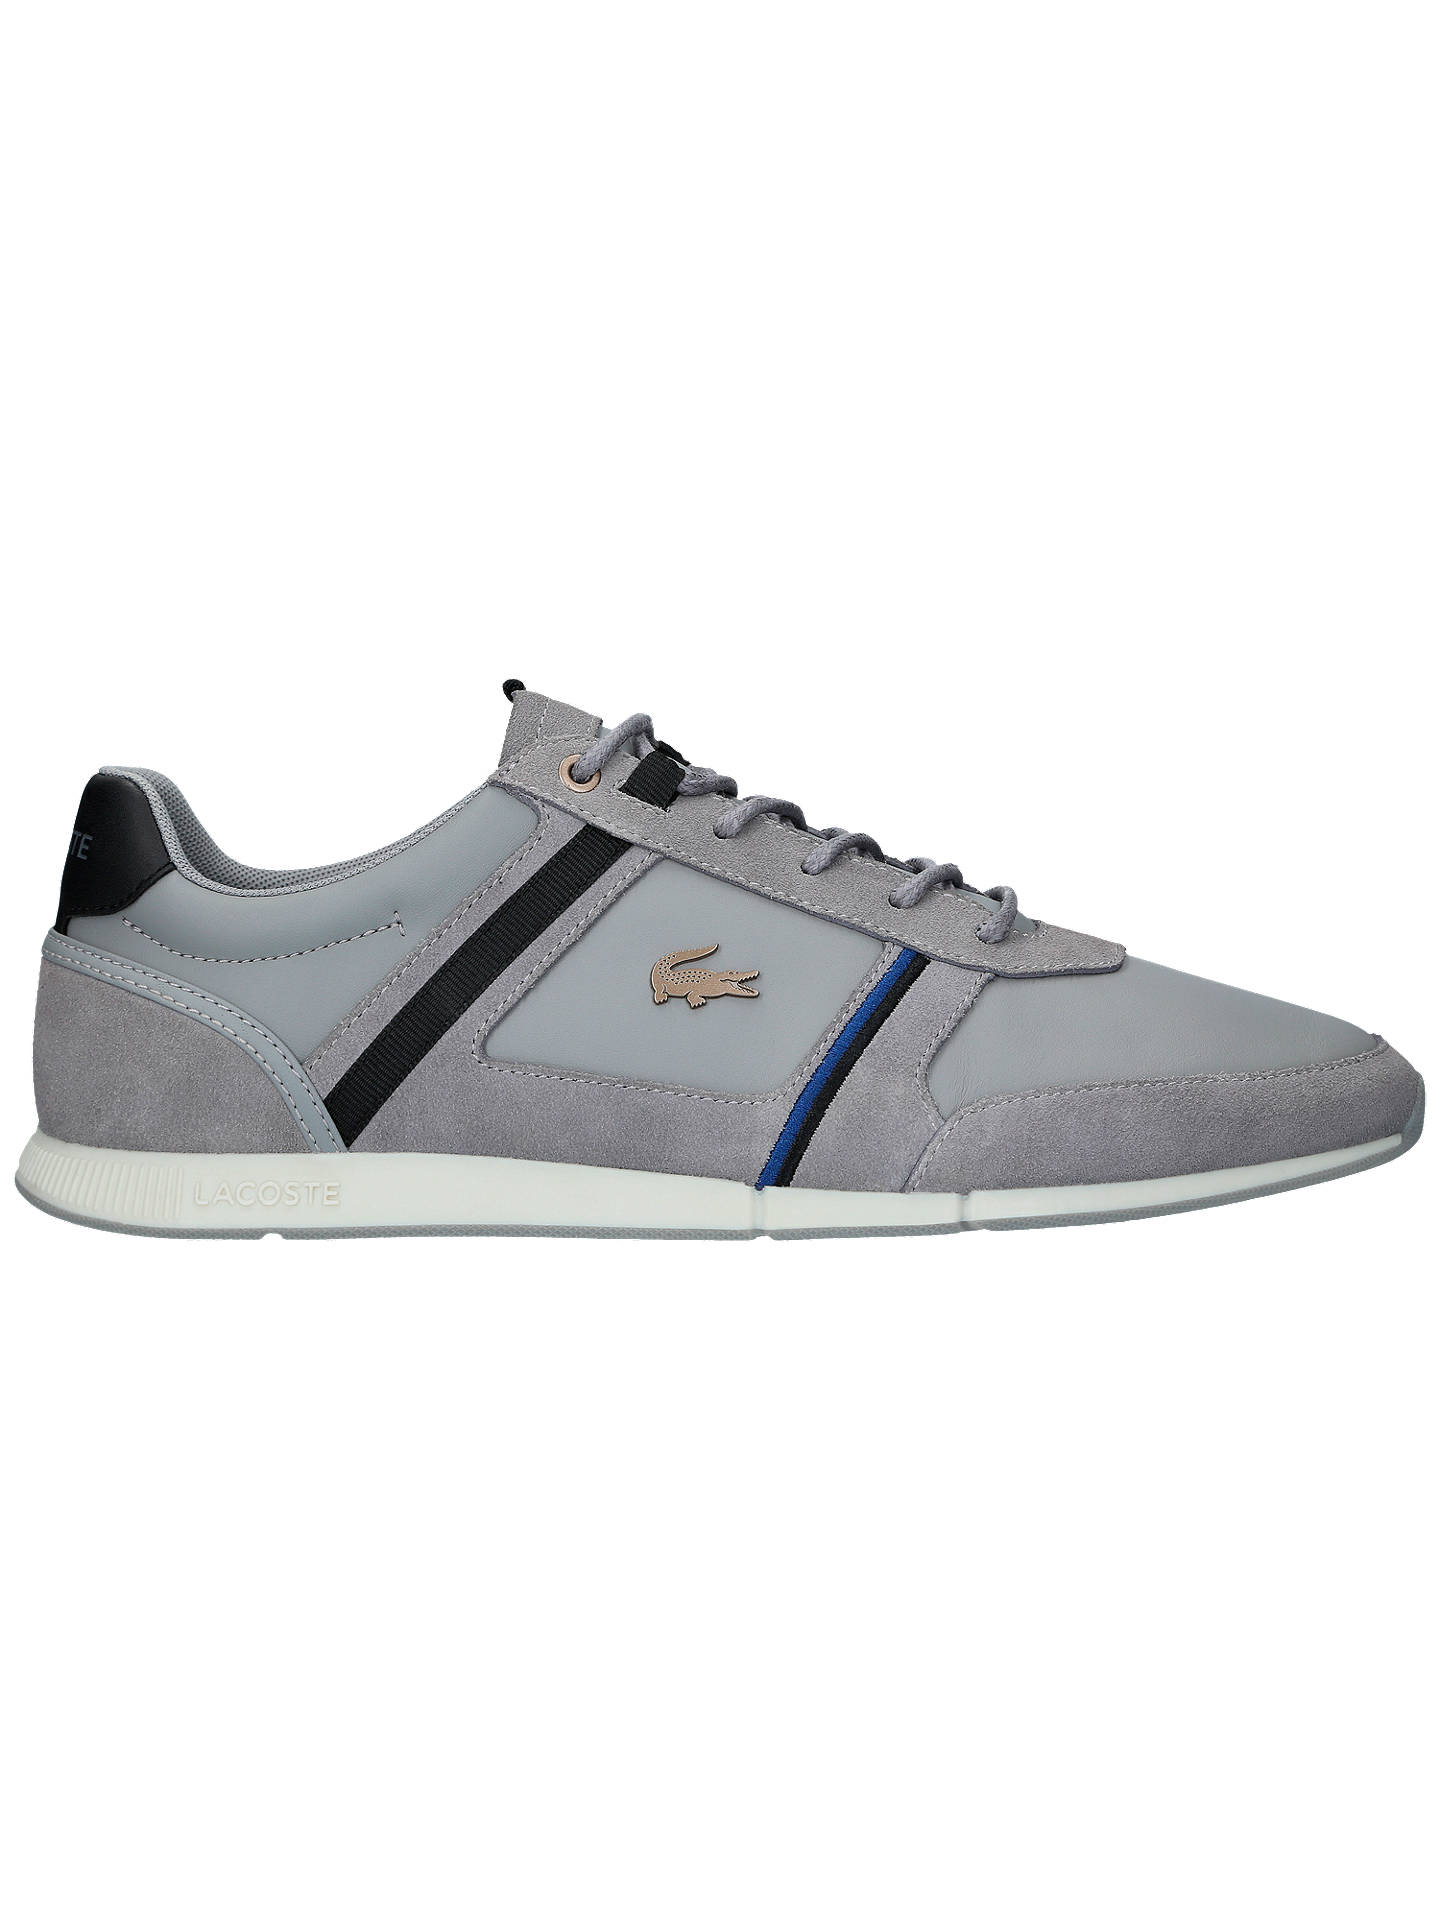 cec8c6390 Buy Lacoste Menerva Leather Trainers